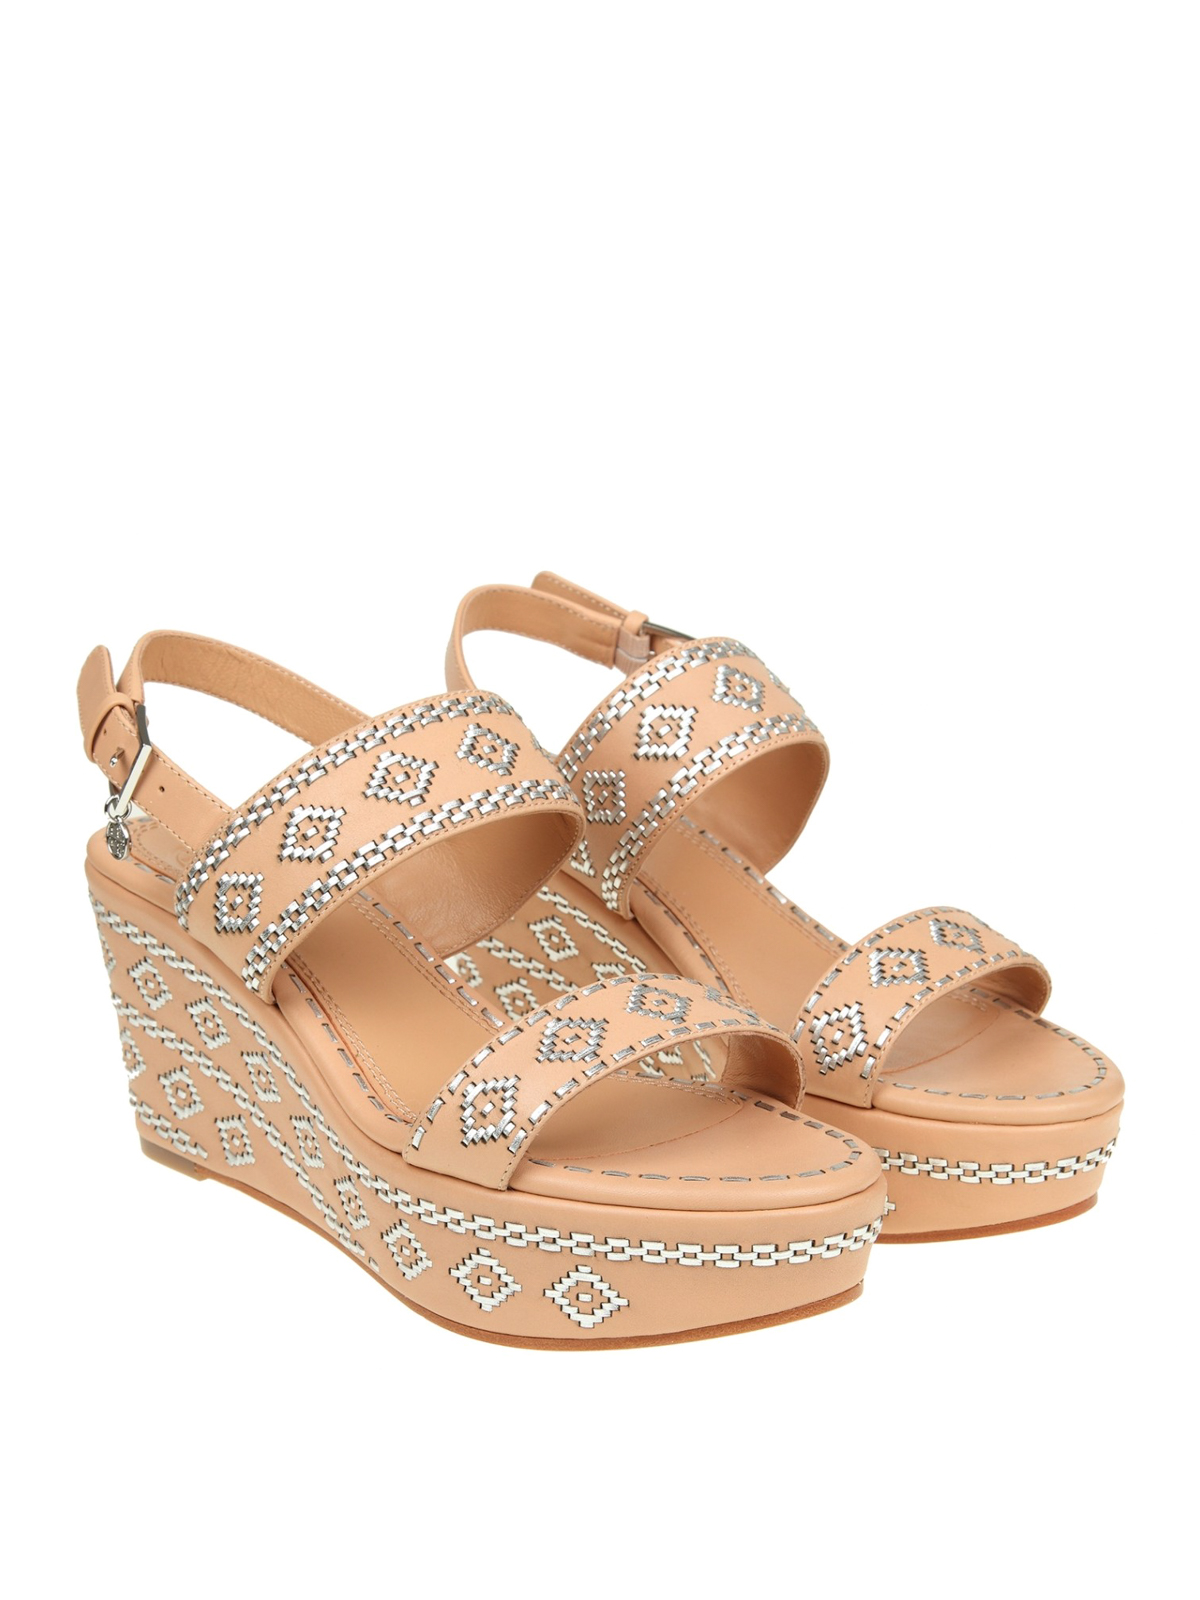 6d3a472b3734fb Tory Burch - Blake nude leather wedge sandals - sandals - 47121261